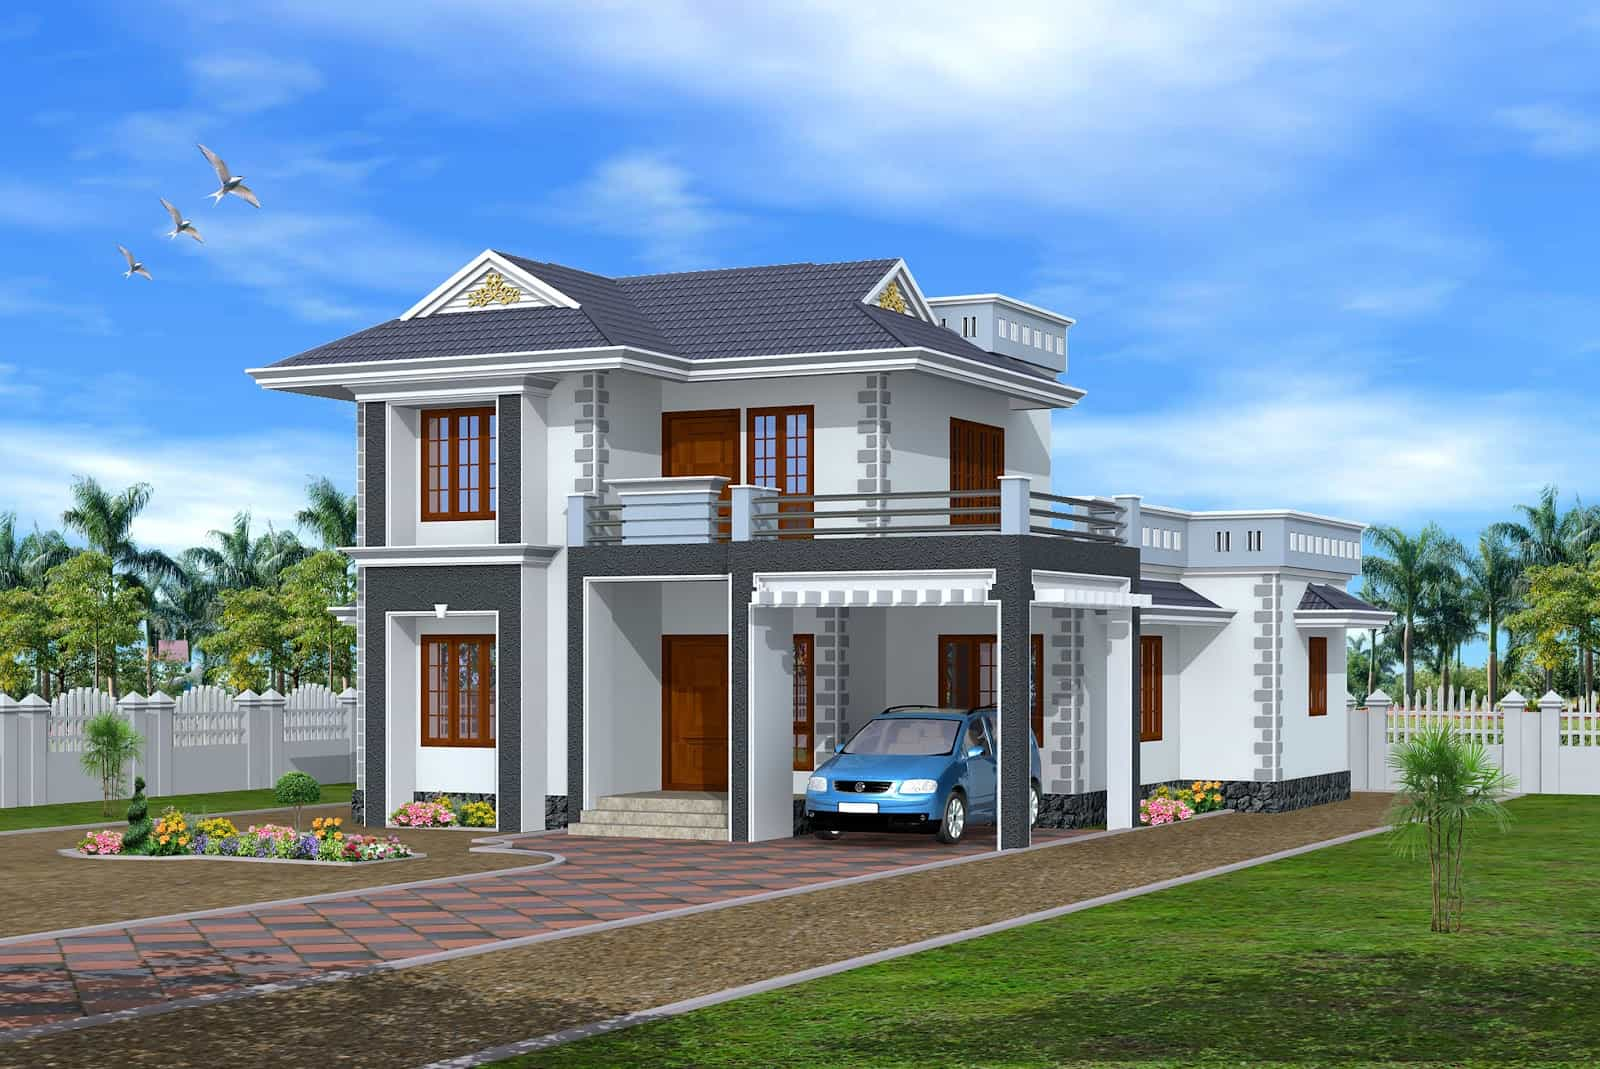 Home Design Picture Indian 1874 Sqft Modern Contemporary 4 Bhk Villa Home  Architecture Design 3 Bedroom